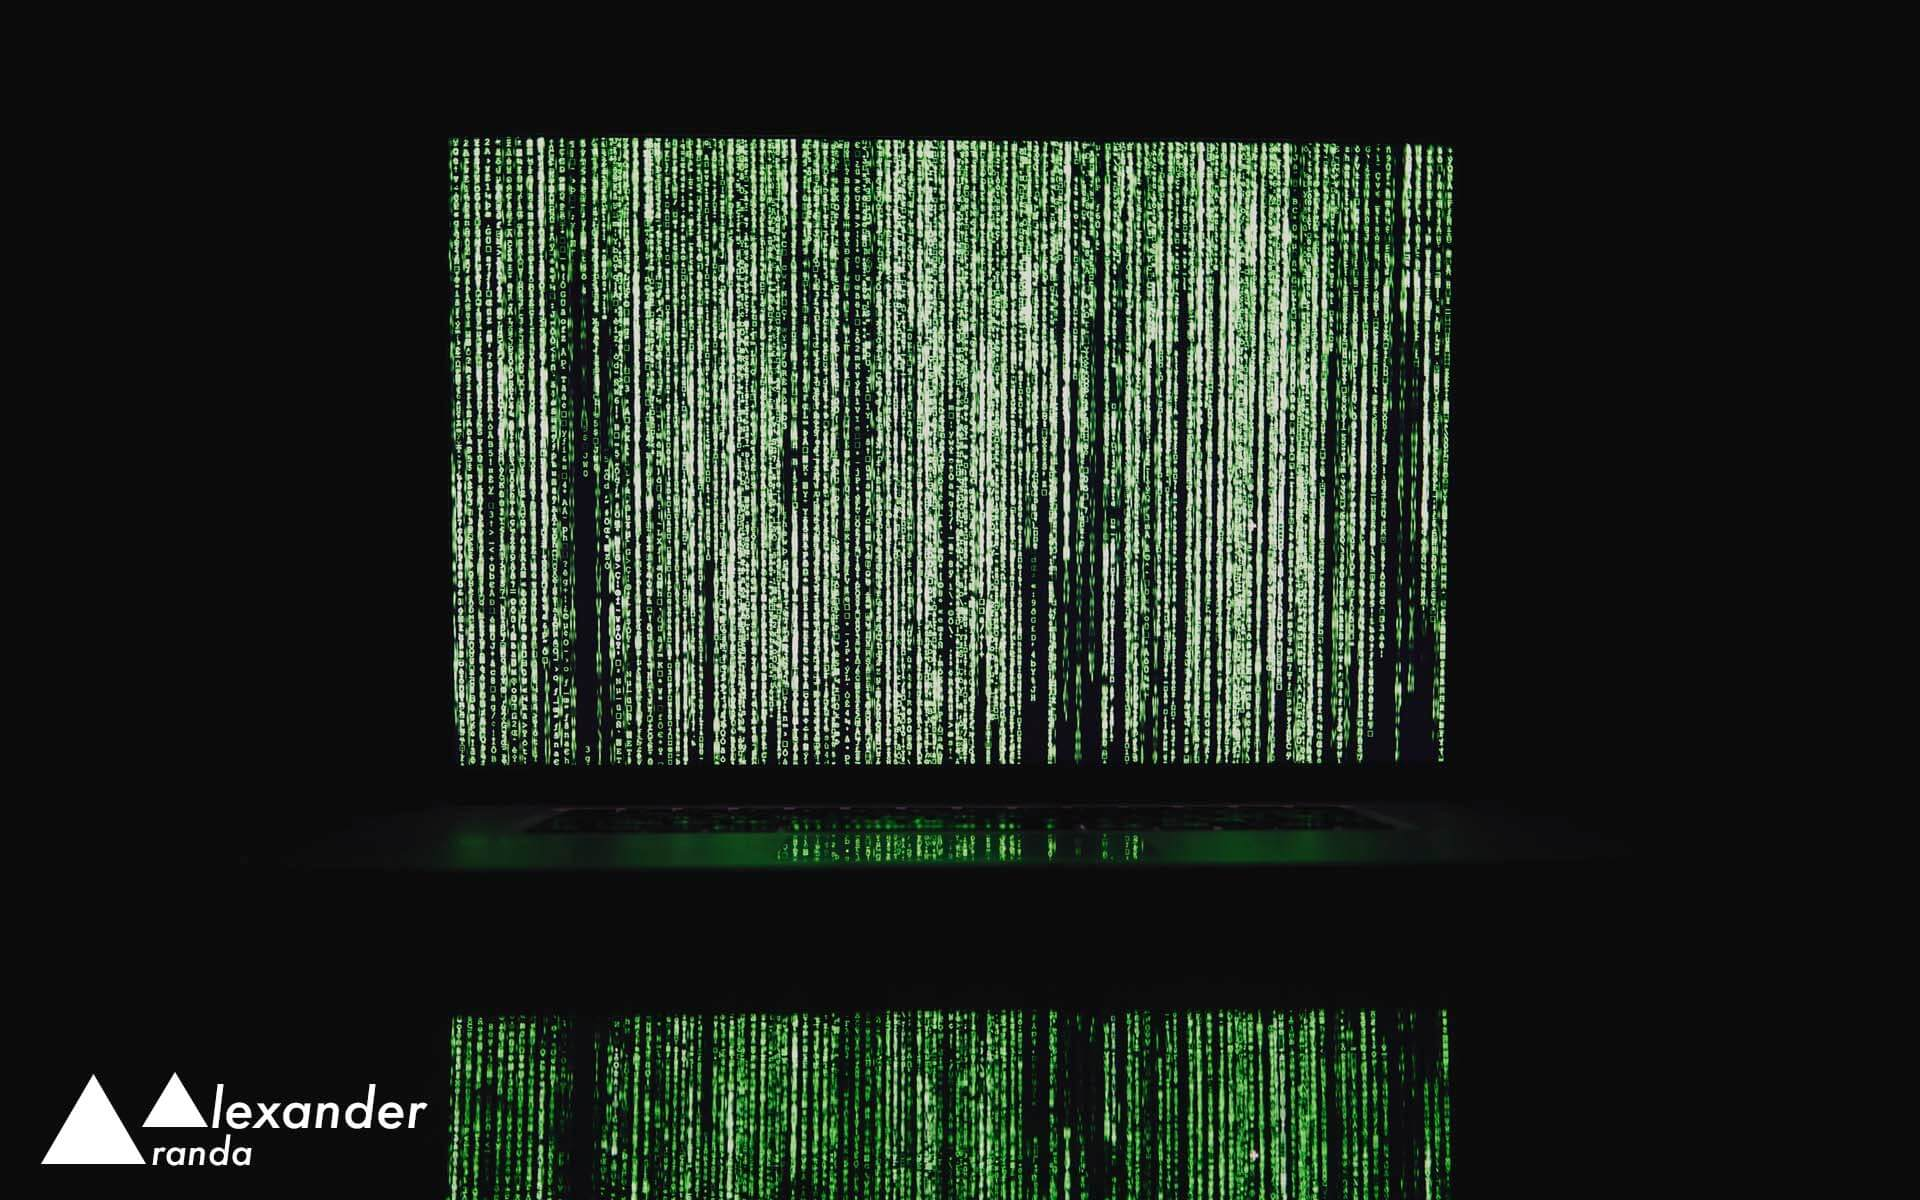 Laptop displaying falling green text from The Matrix movie